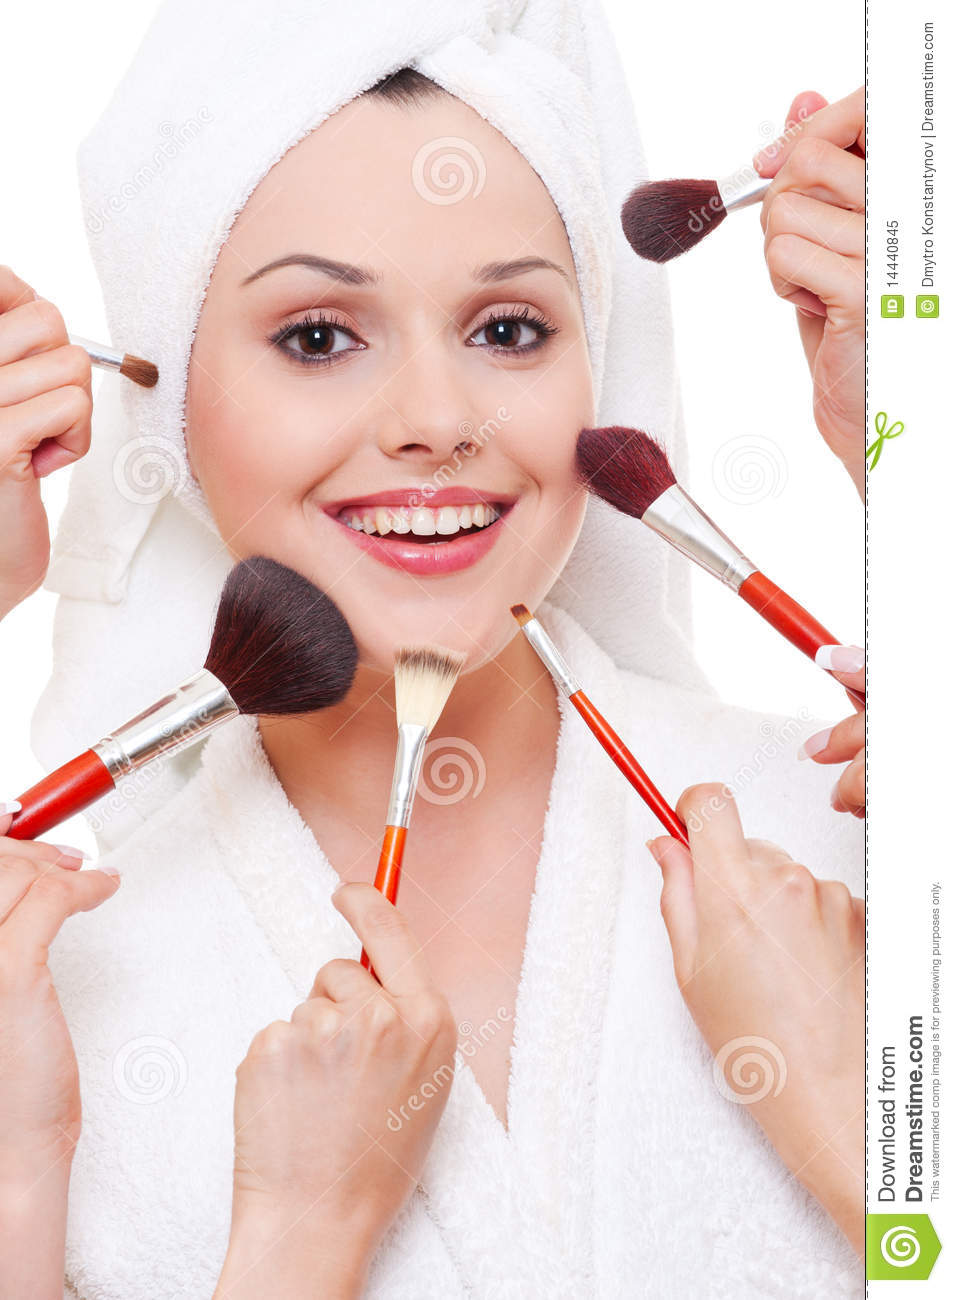 Many Hands Applying Make-up To Beautiful Woman Stock Image